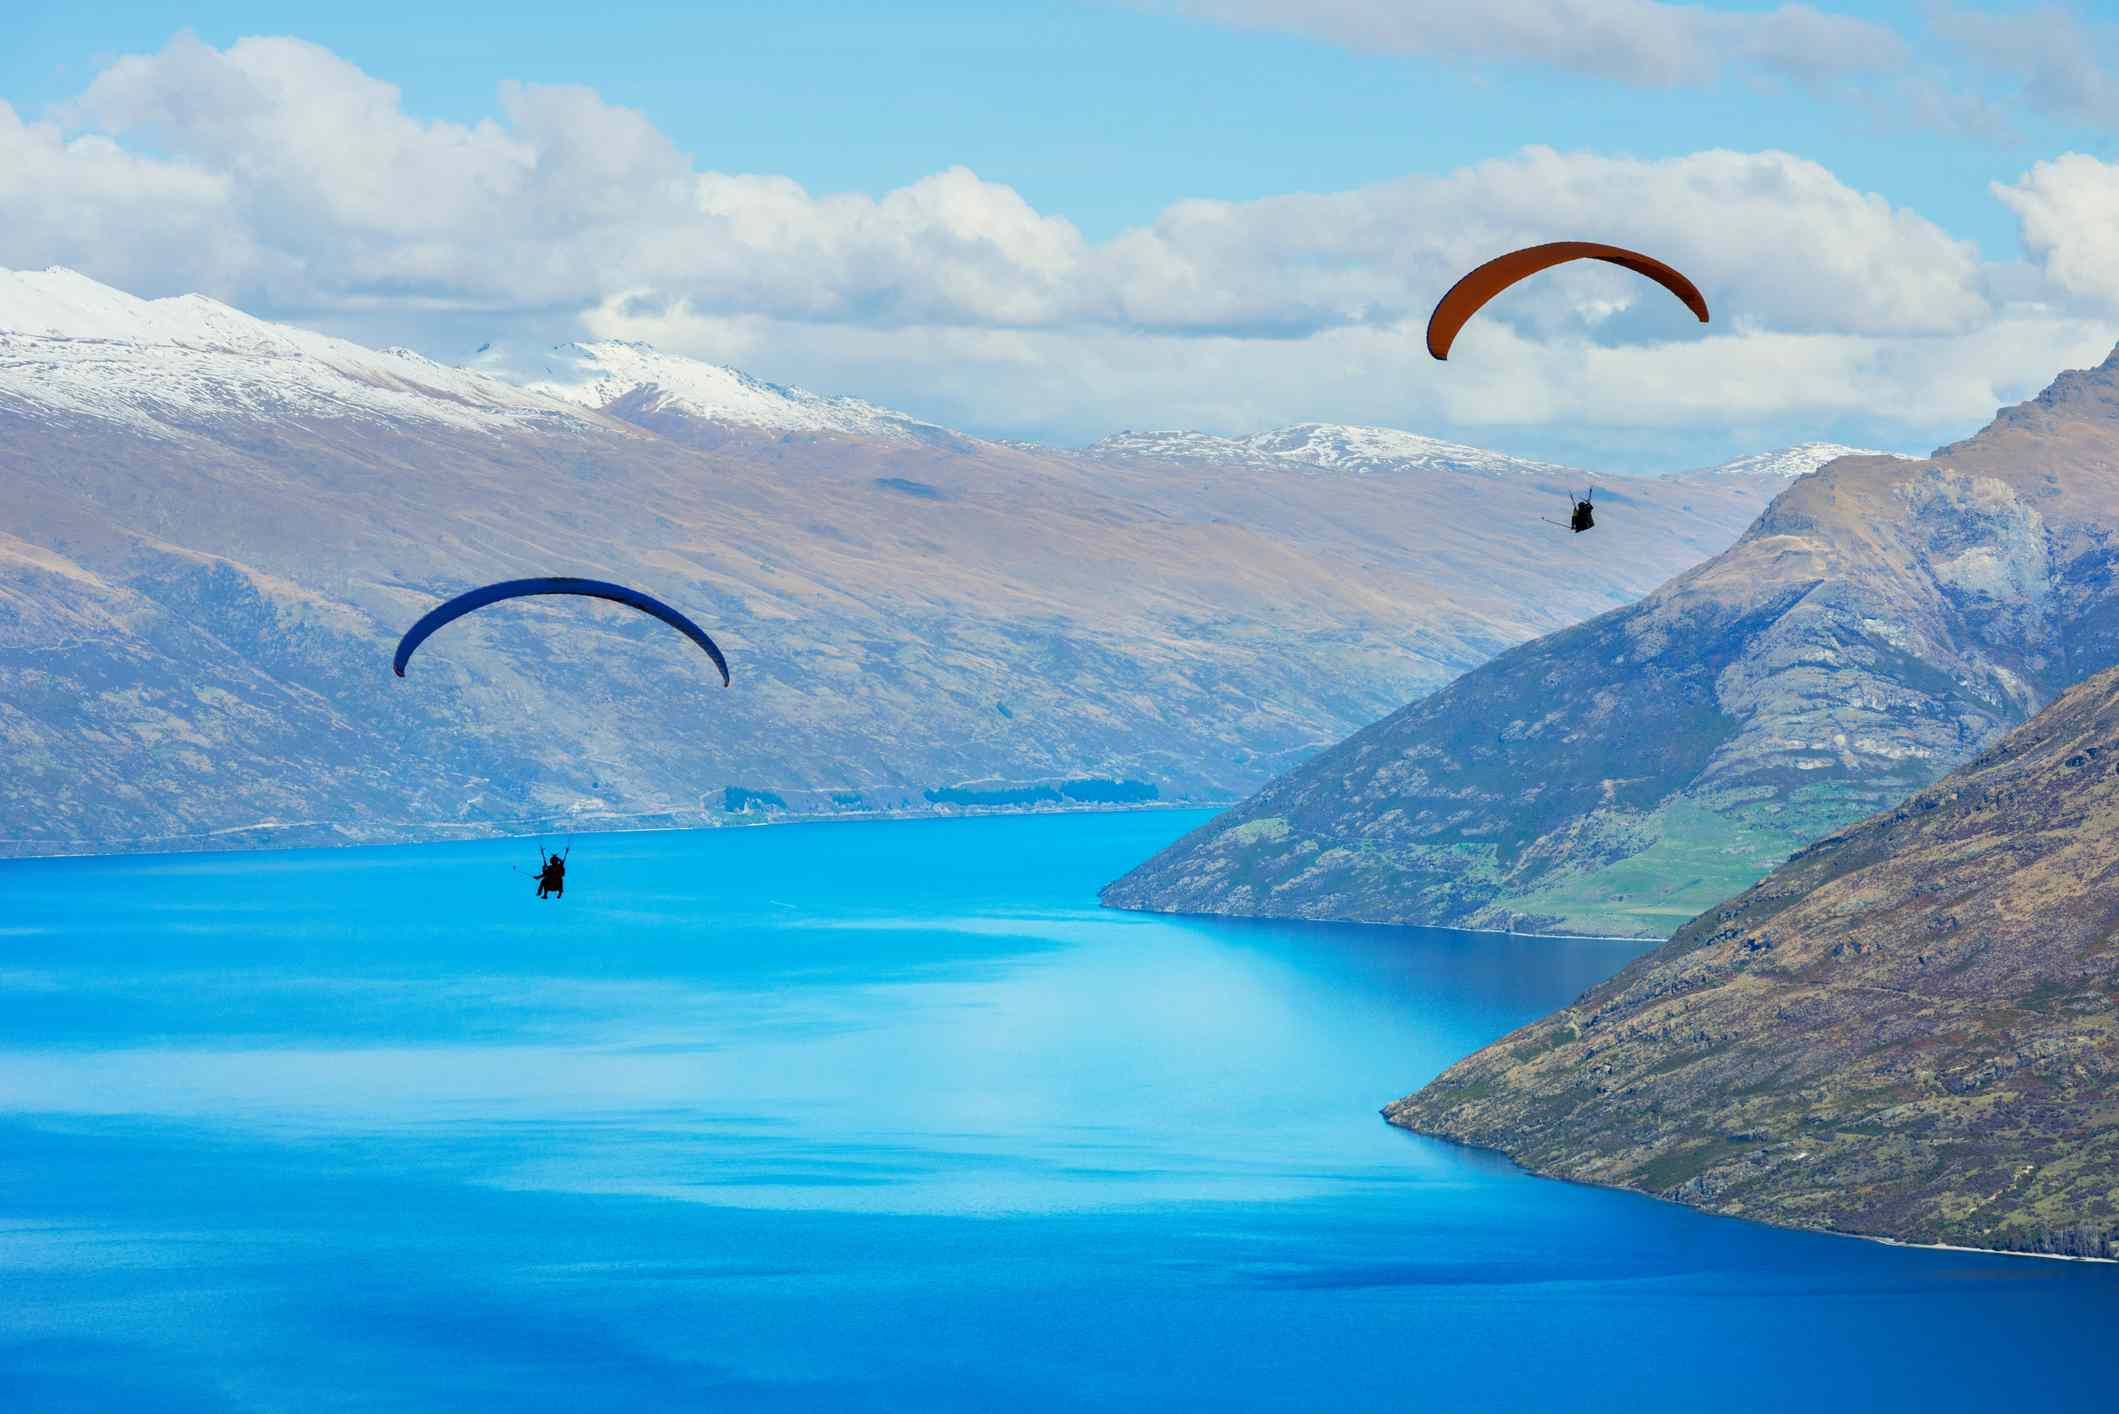 two paragliders with blue lake and snowy mountains in background